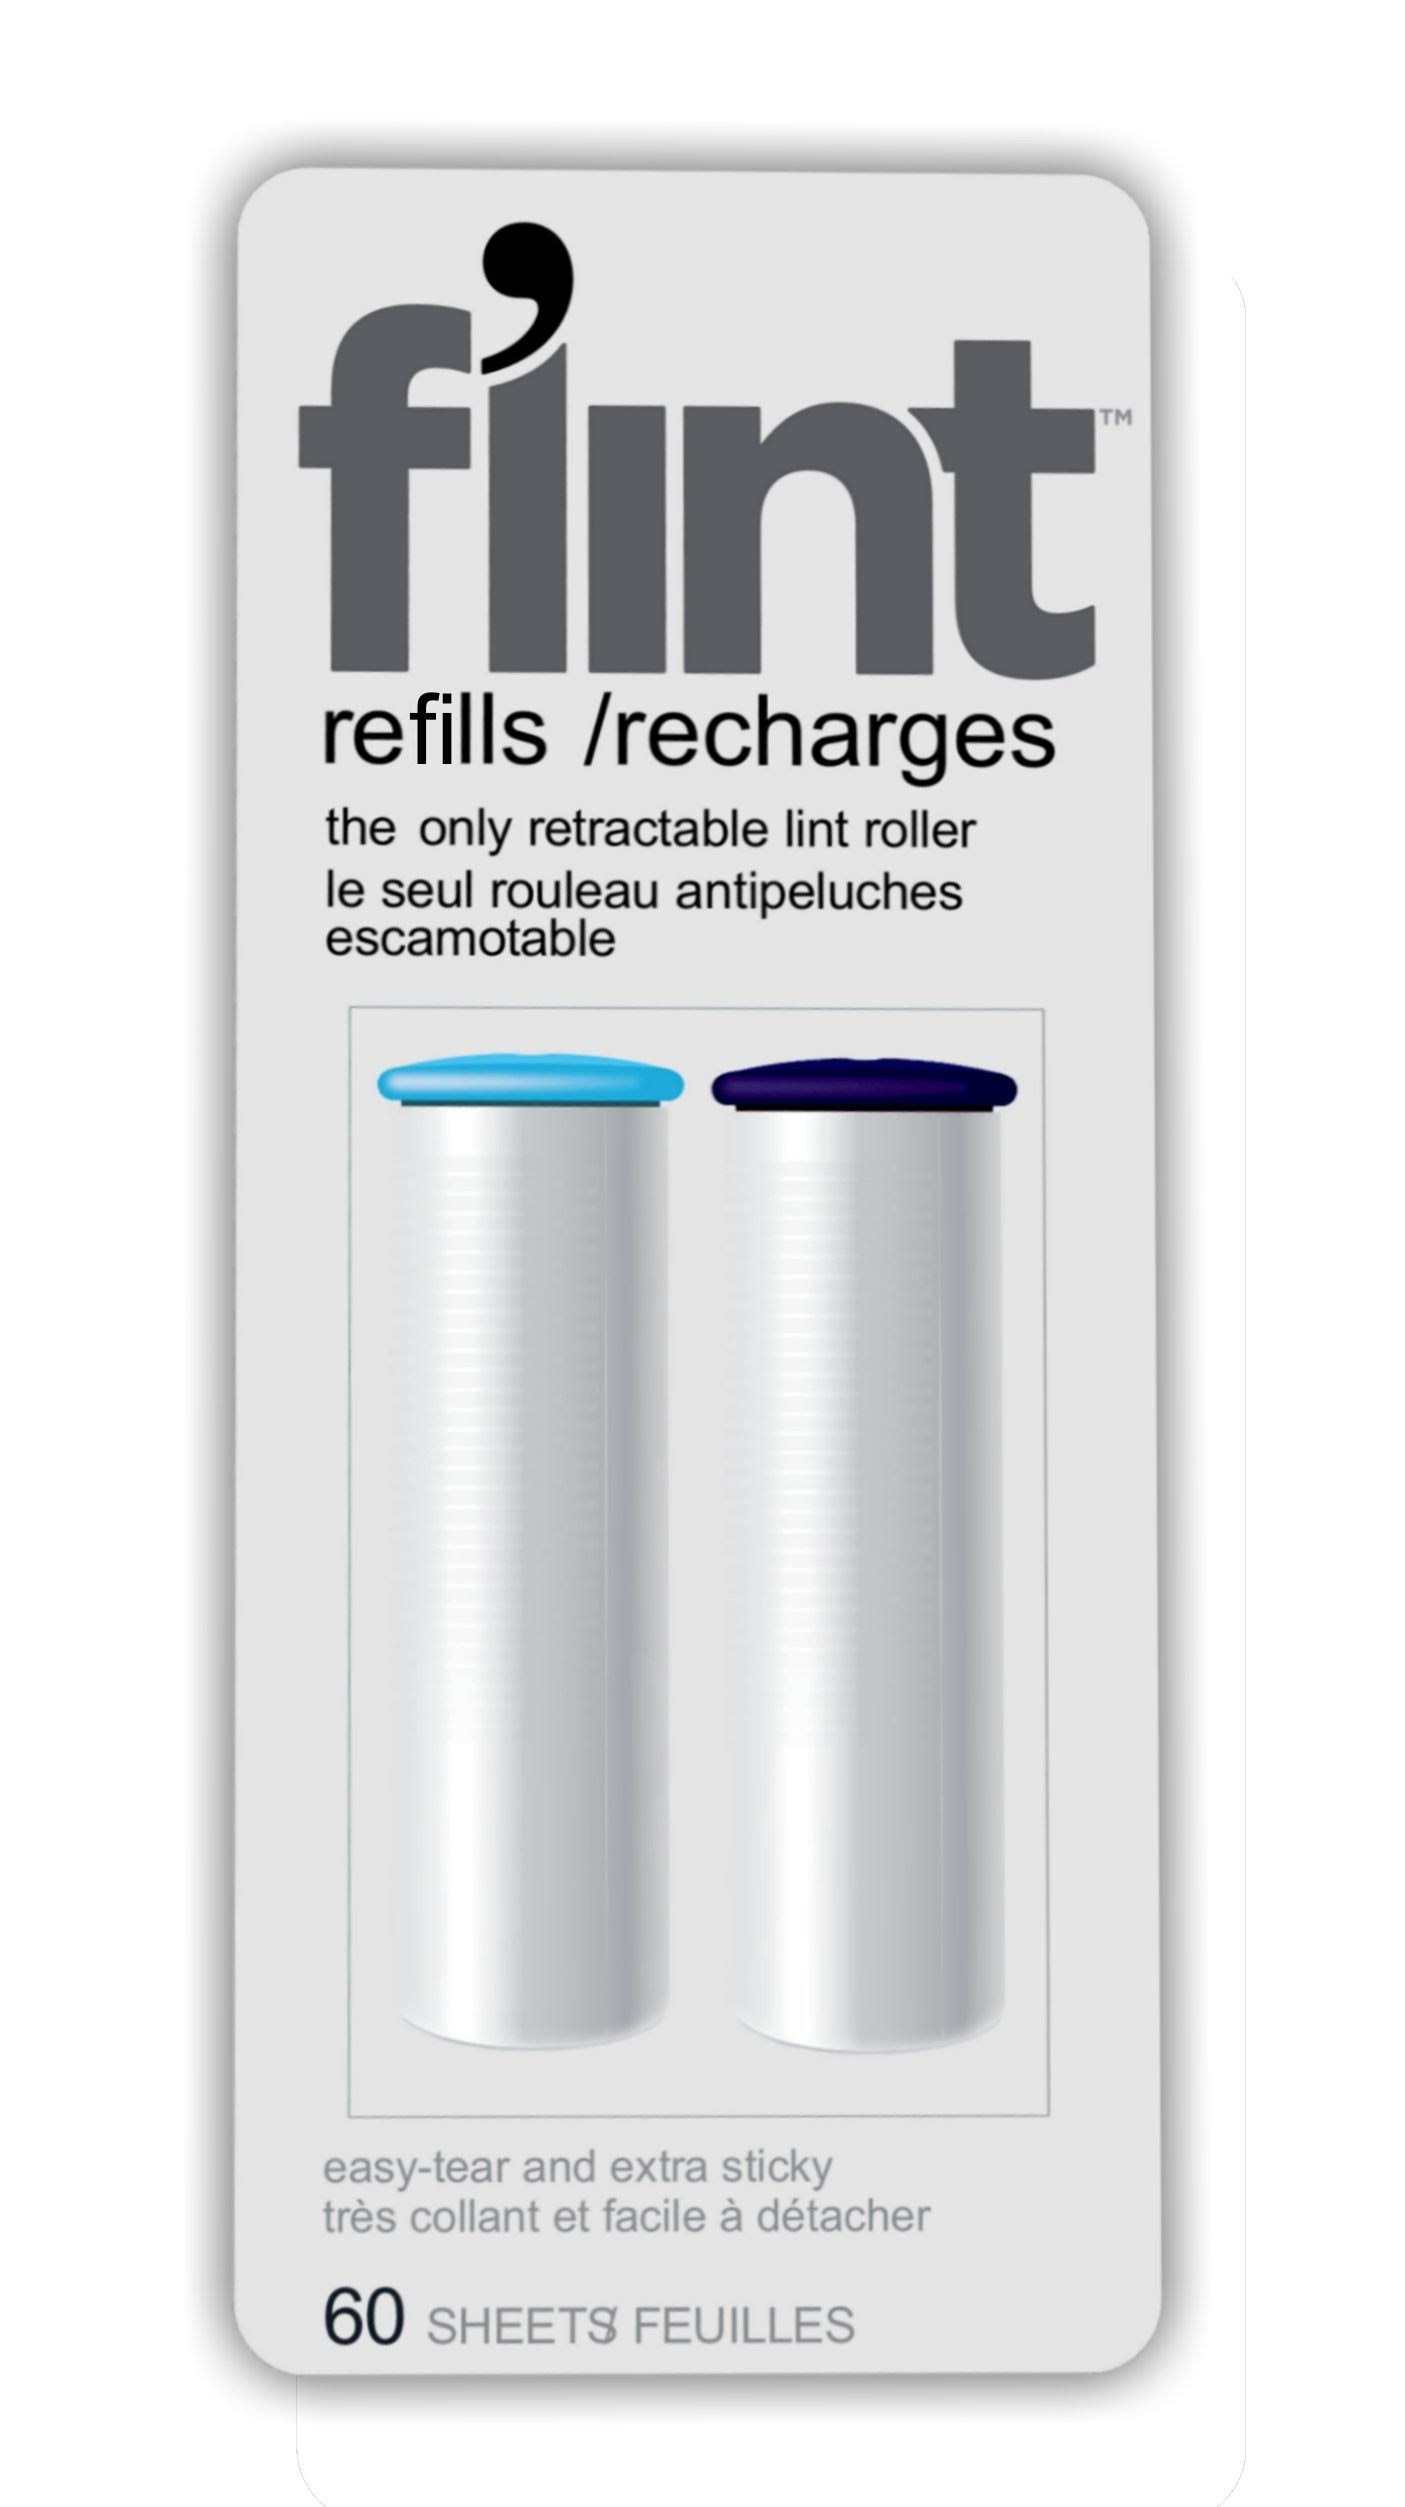 Flint Retractable Lint Roller Refills - 60 Sheets